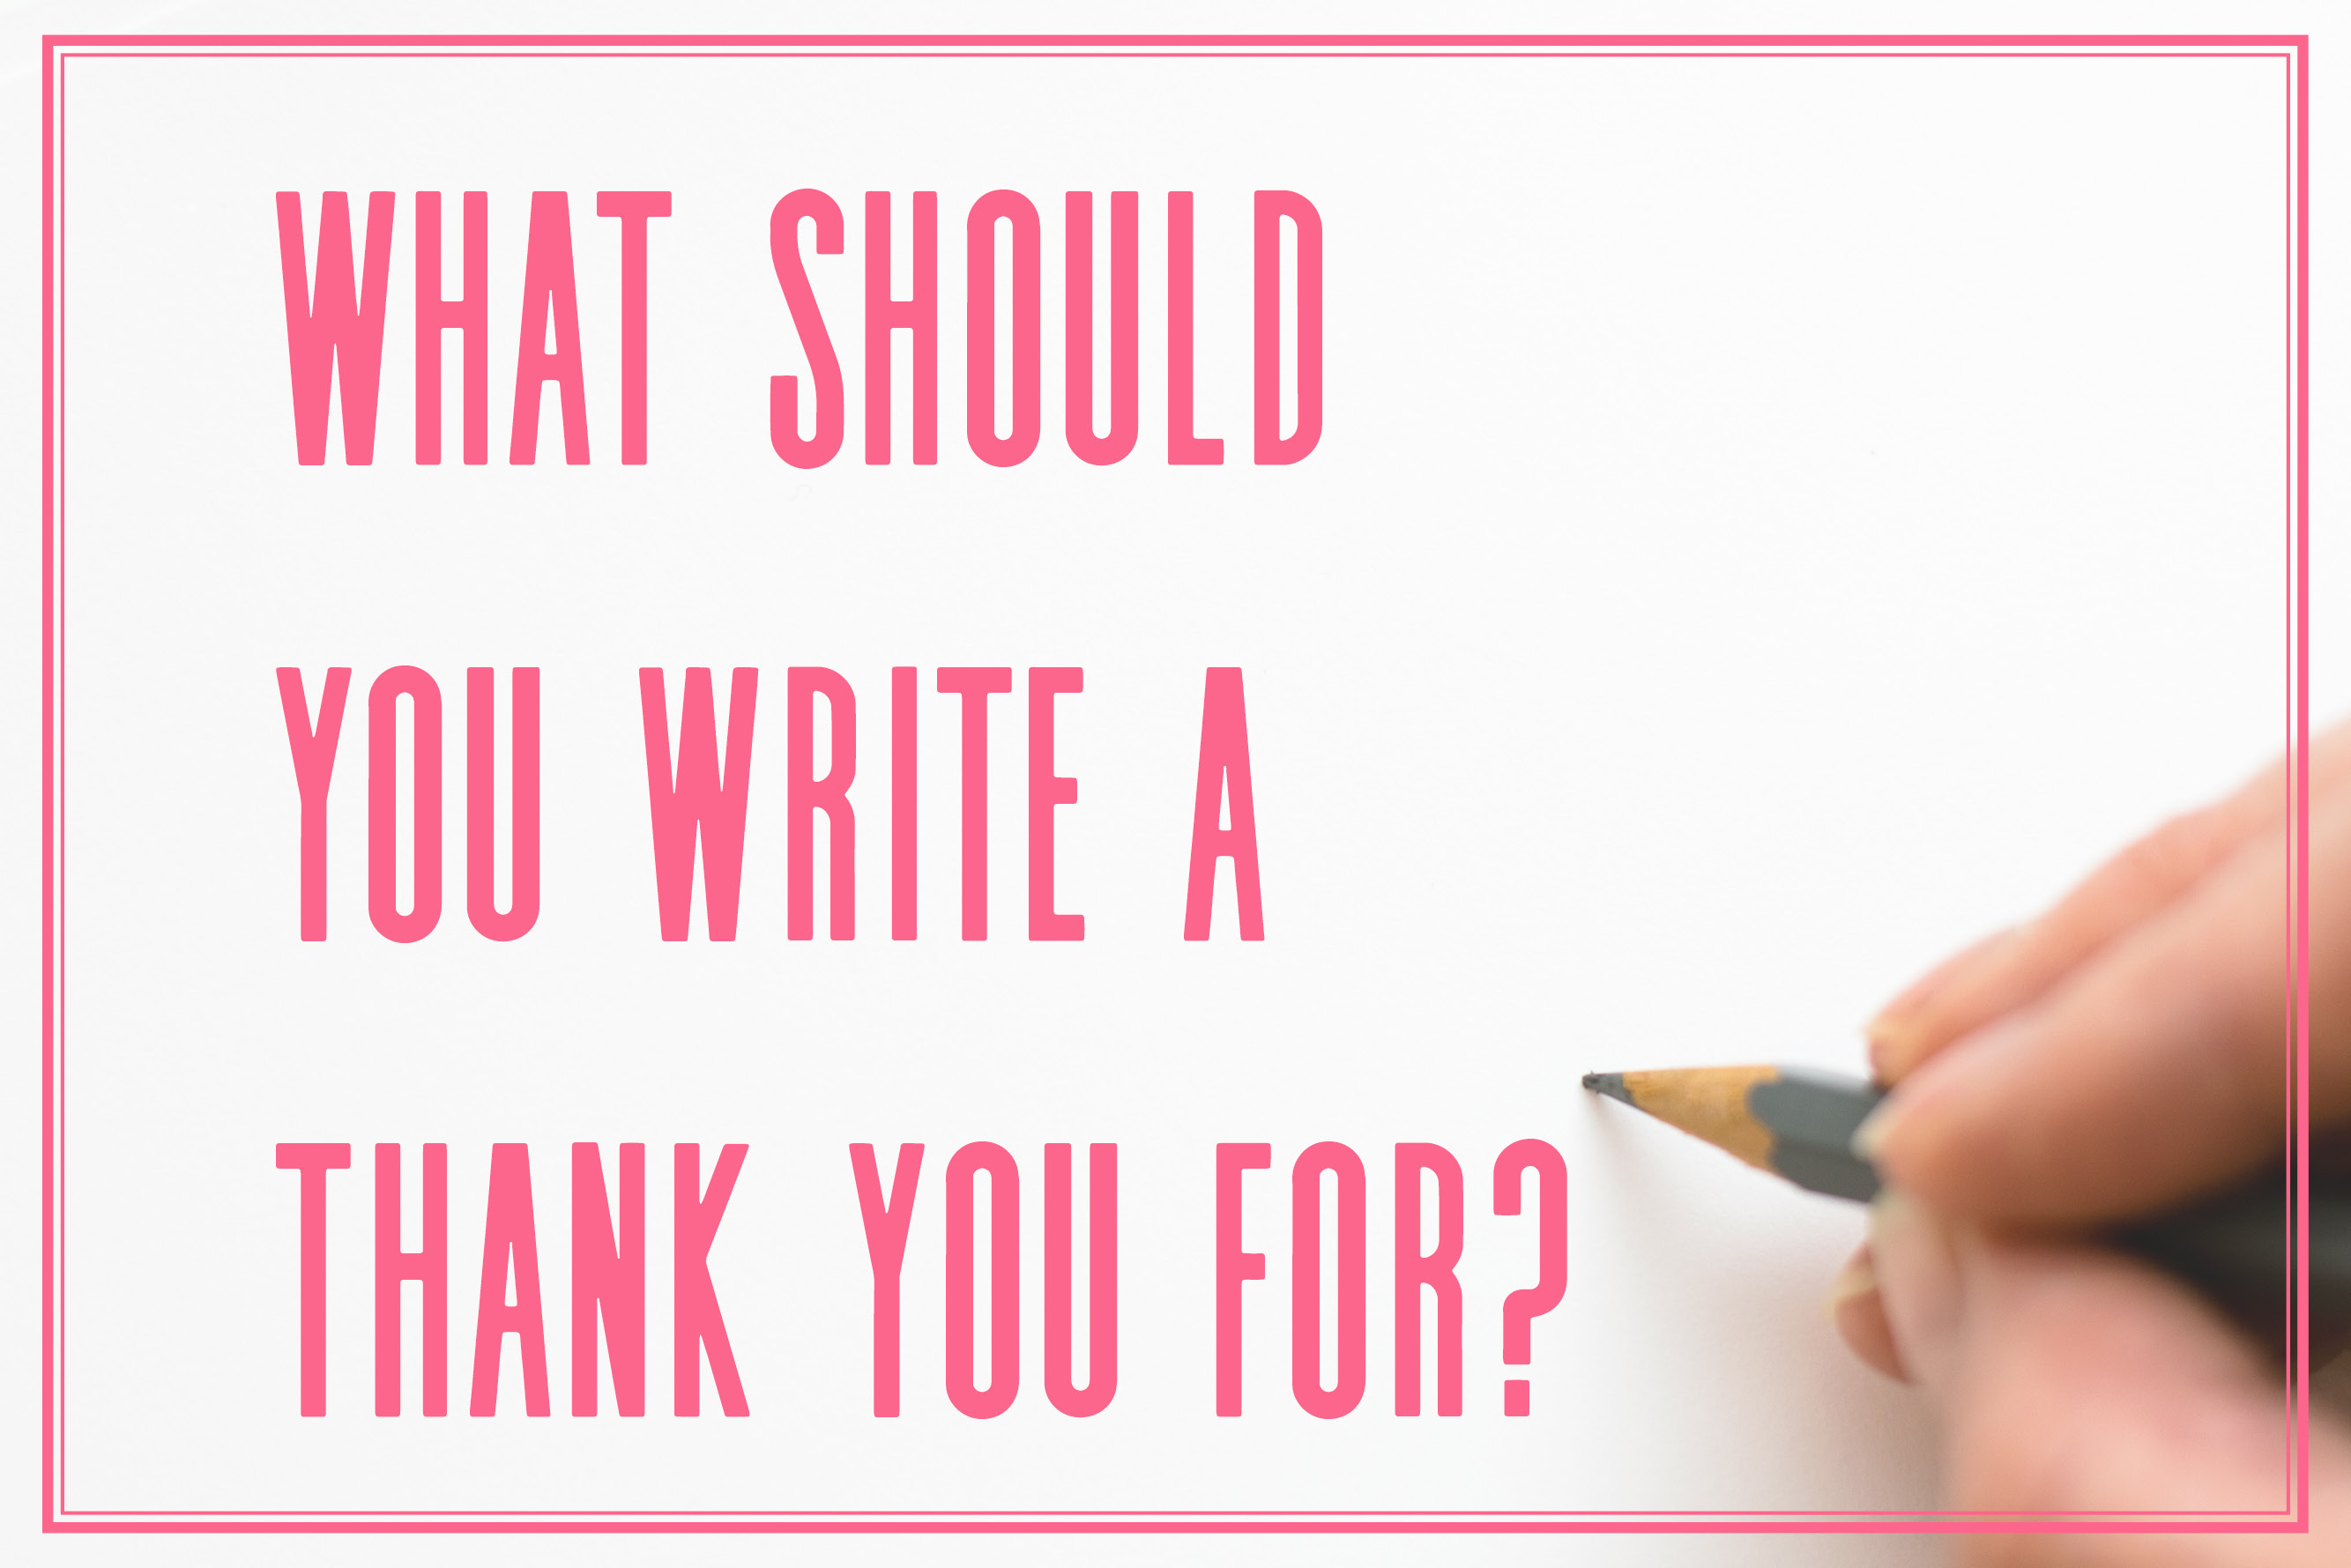 what should you write a thank you for?